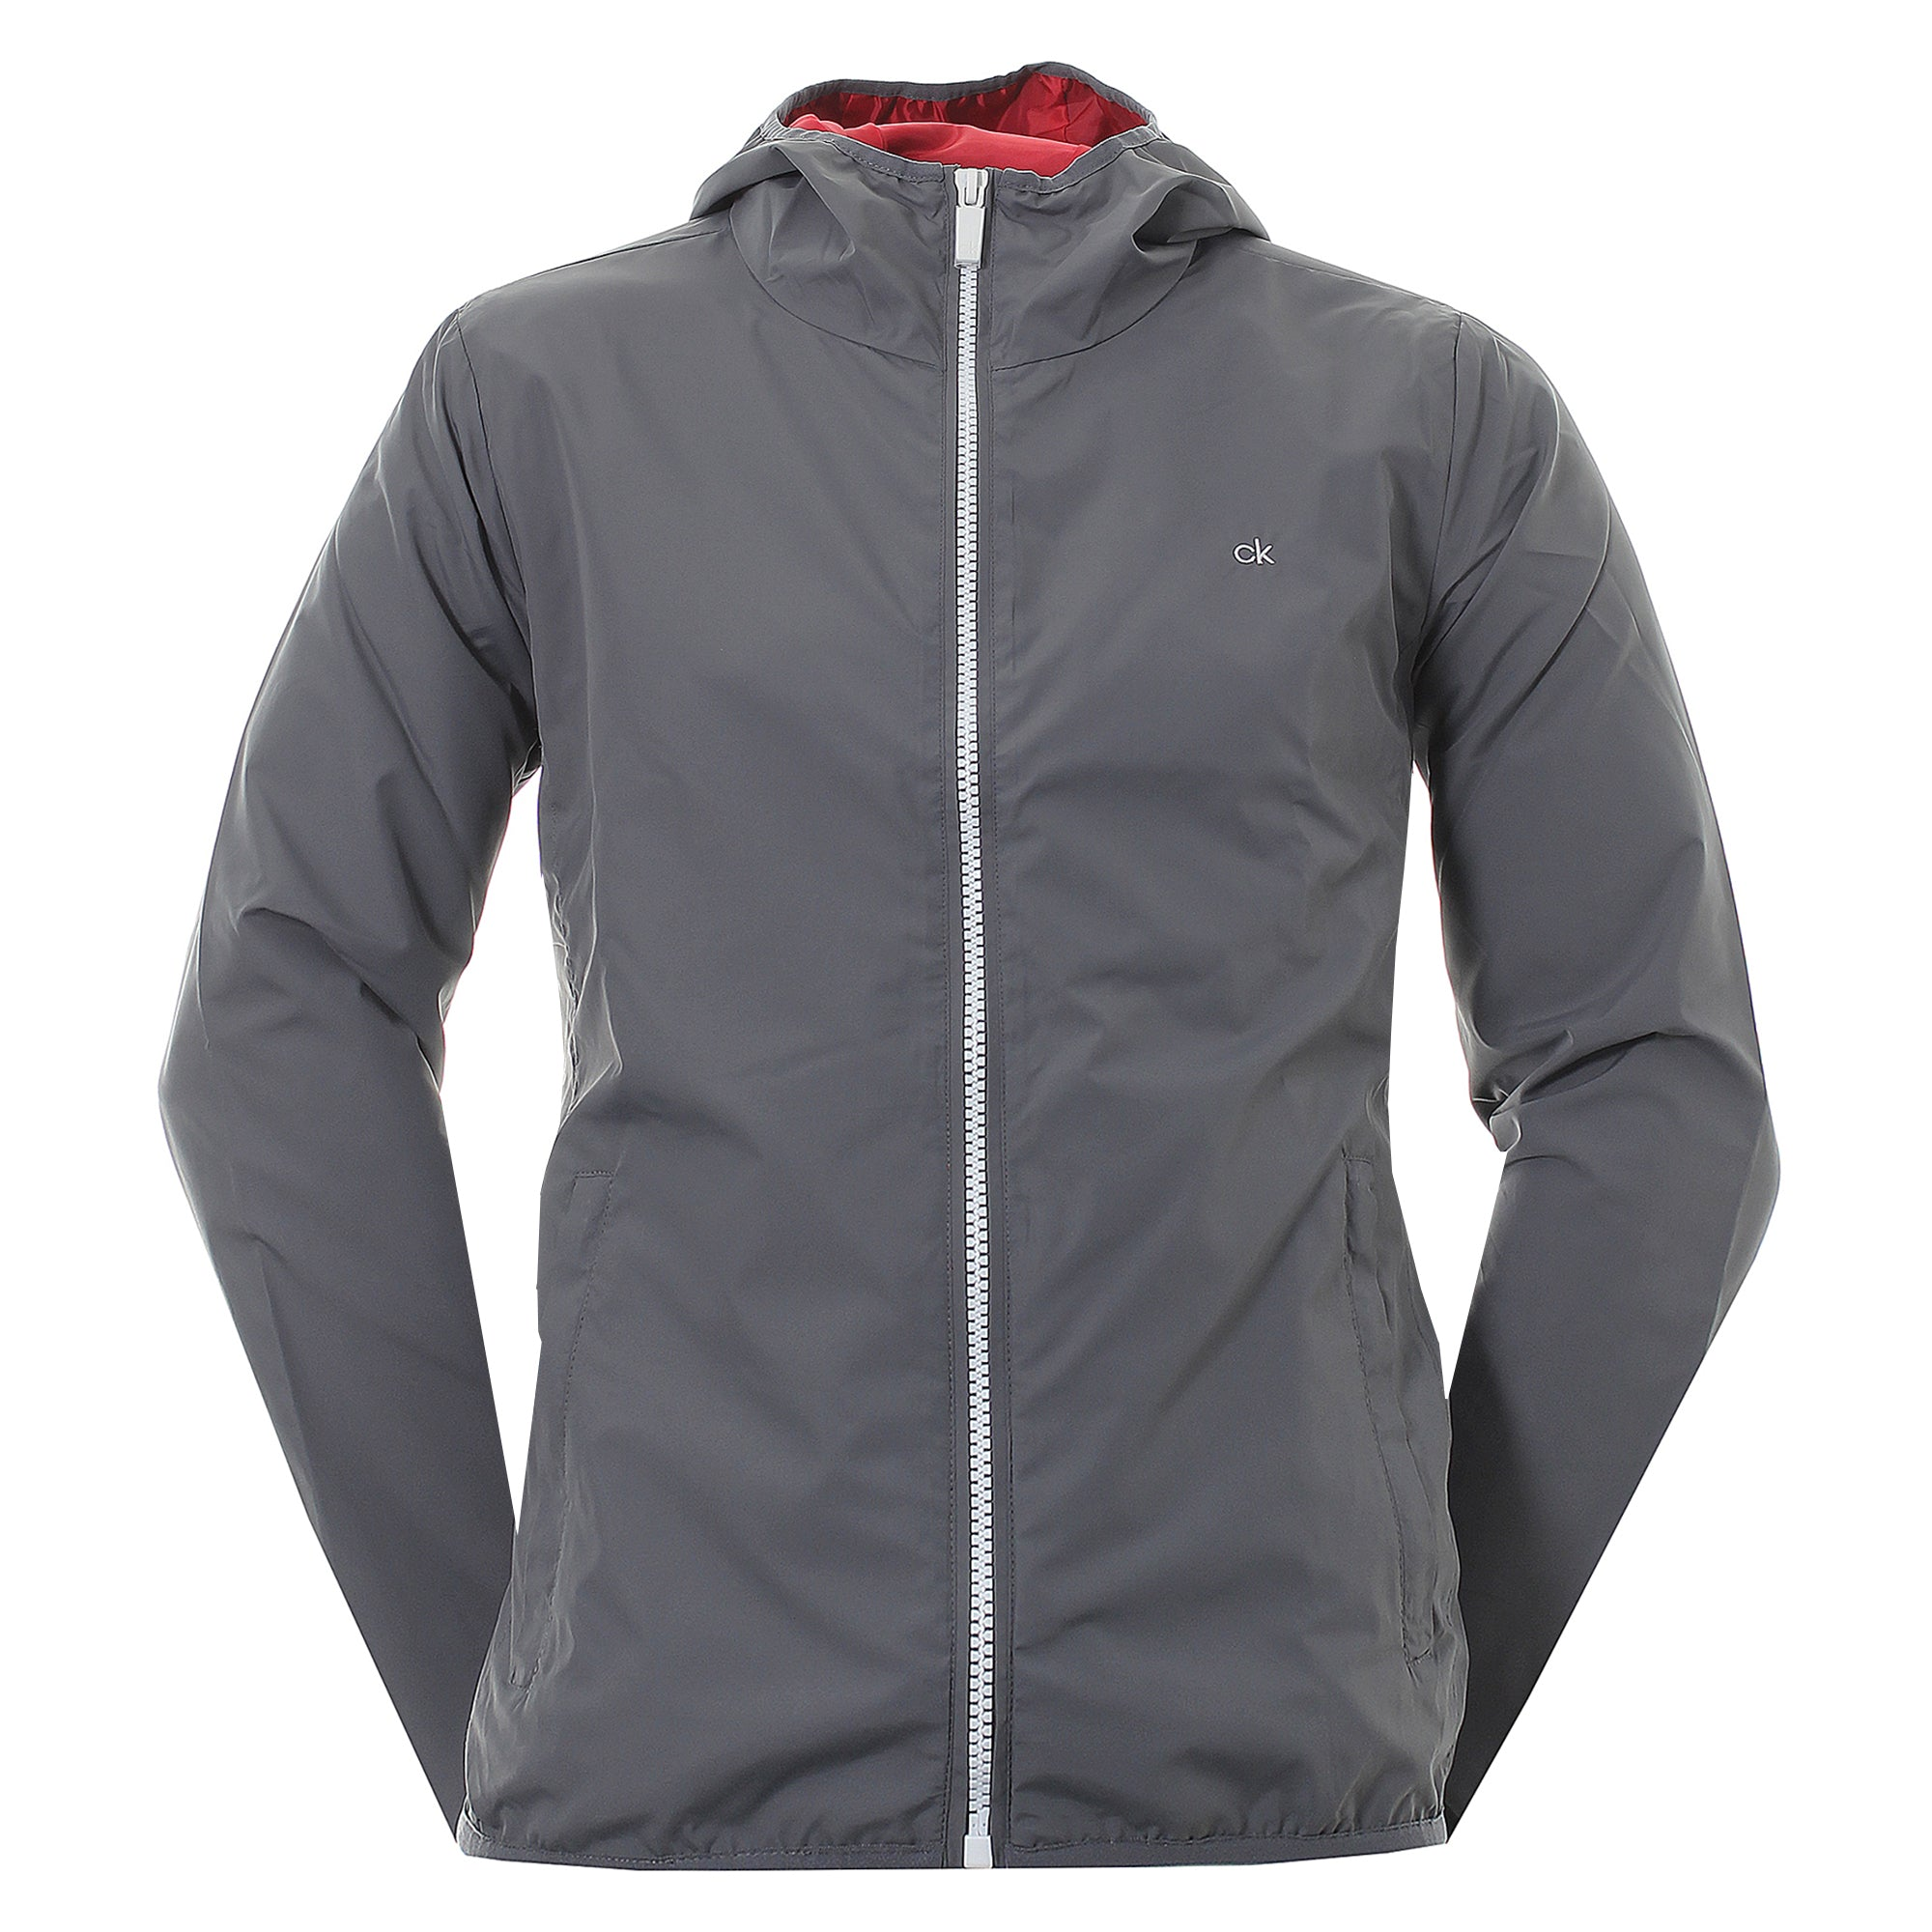 Calvin Klein Golf 365 Wind Jacket